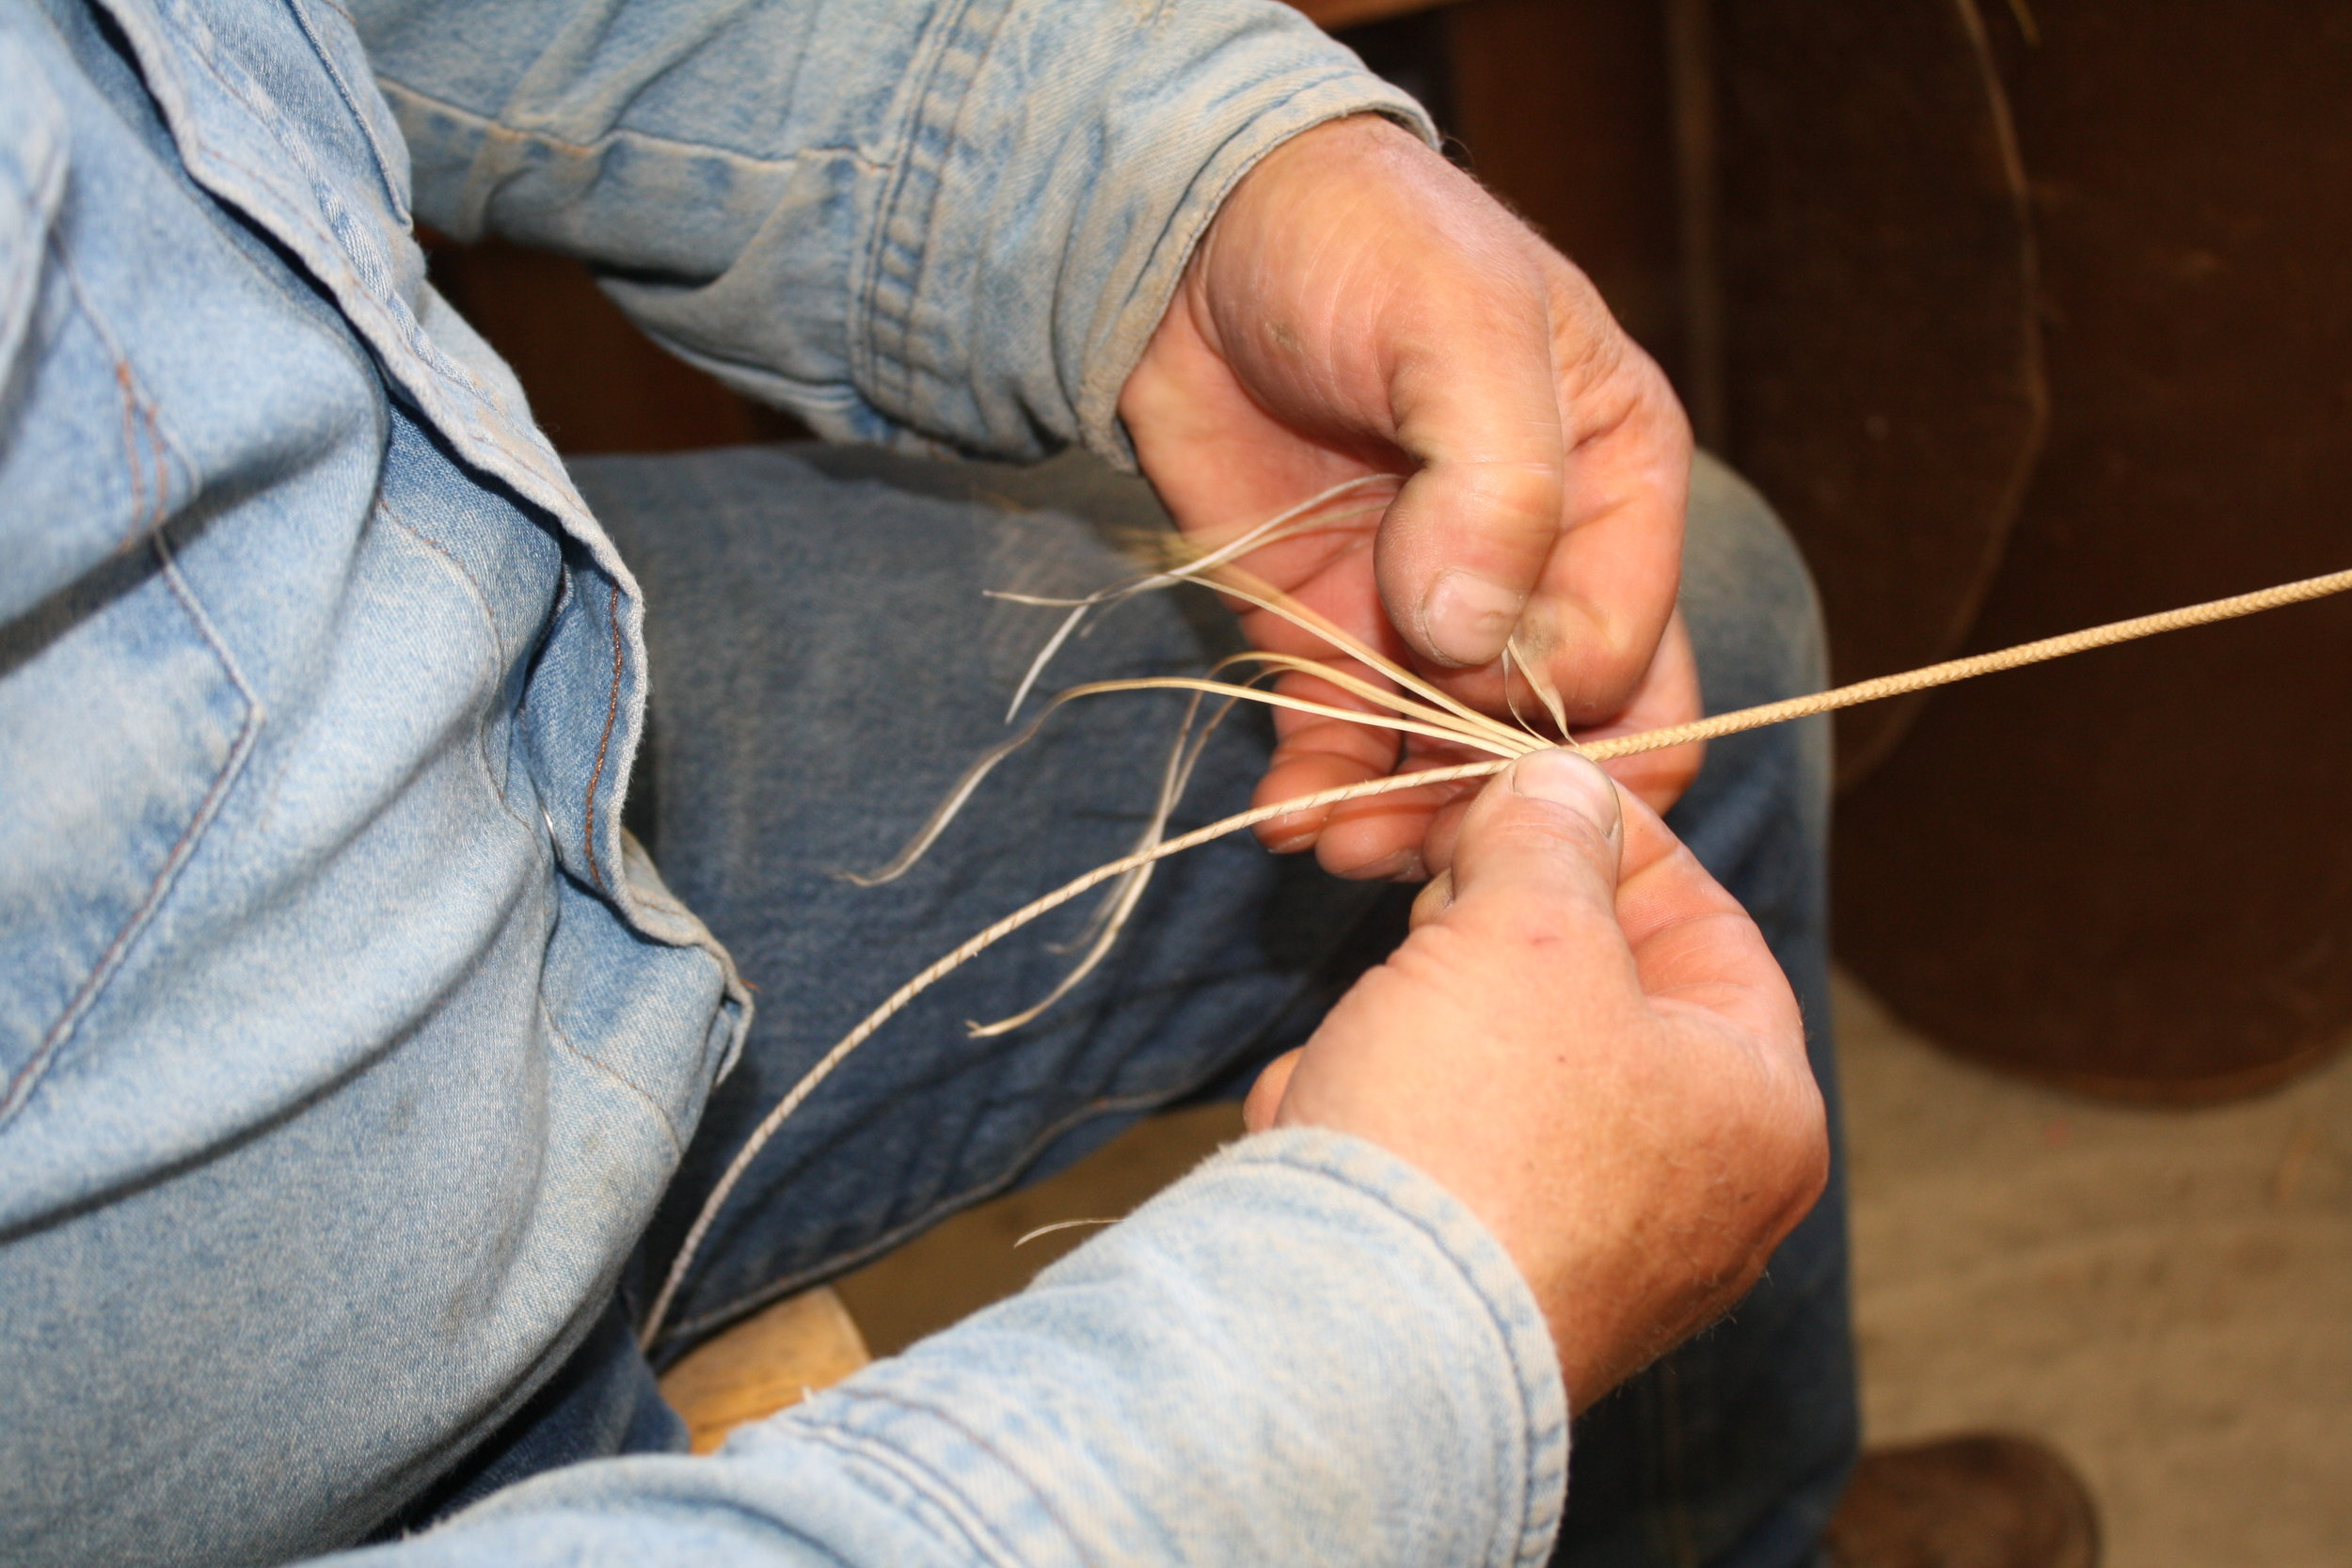 Minor says it's important to keep the tension the same on each string as he braids a horsehide bracelet.